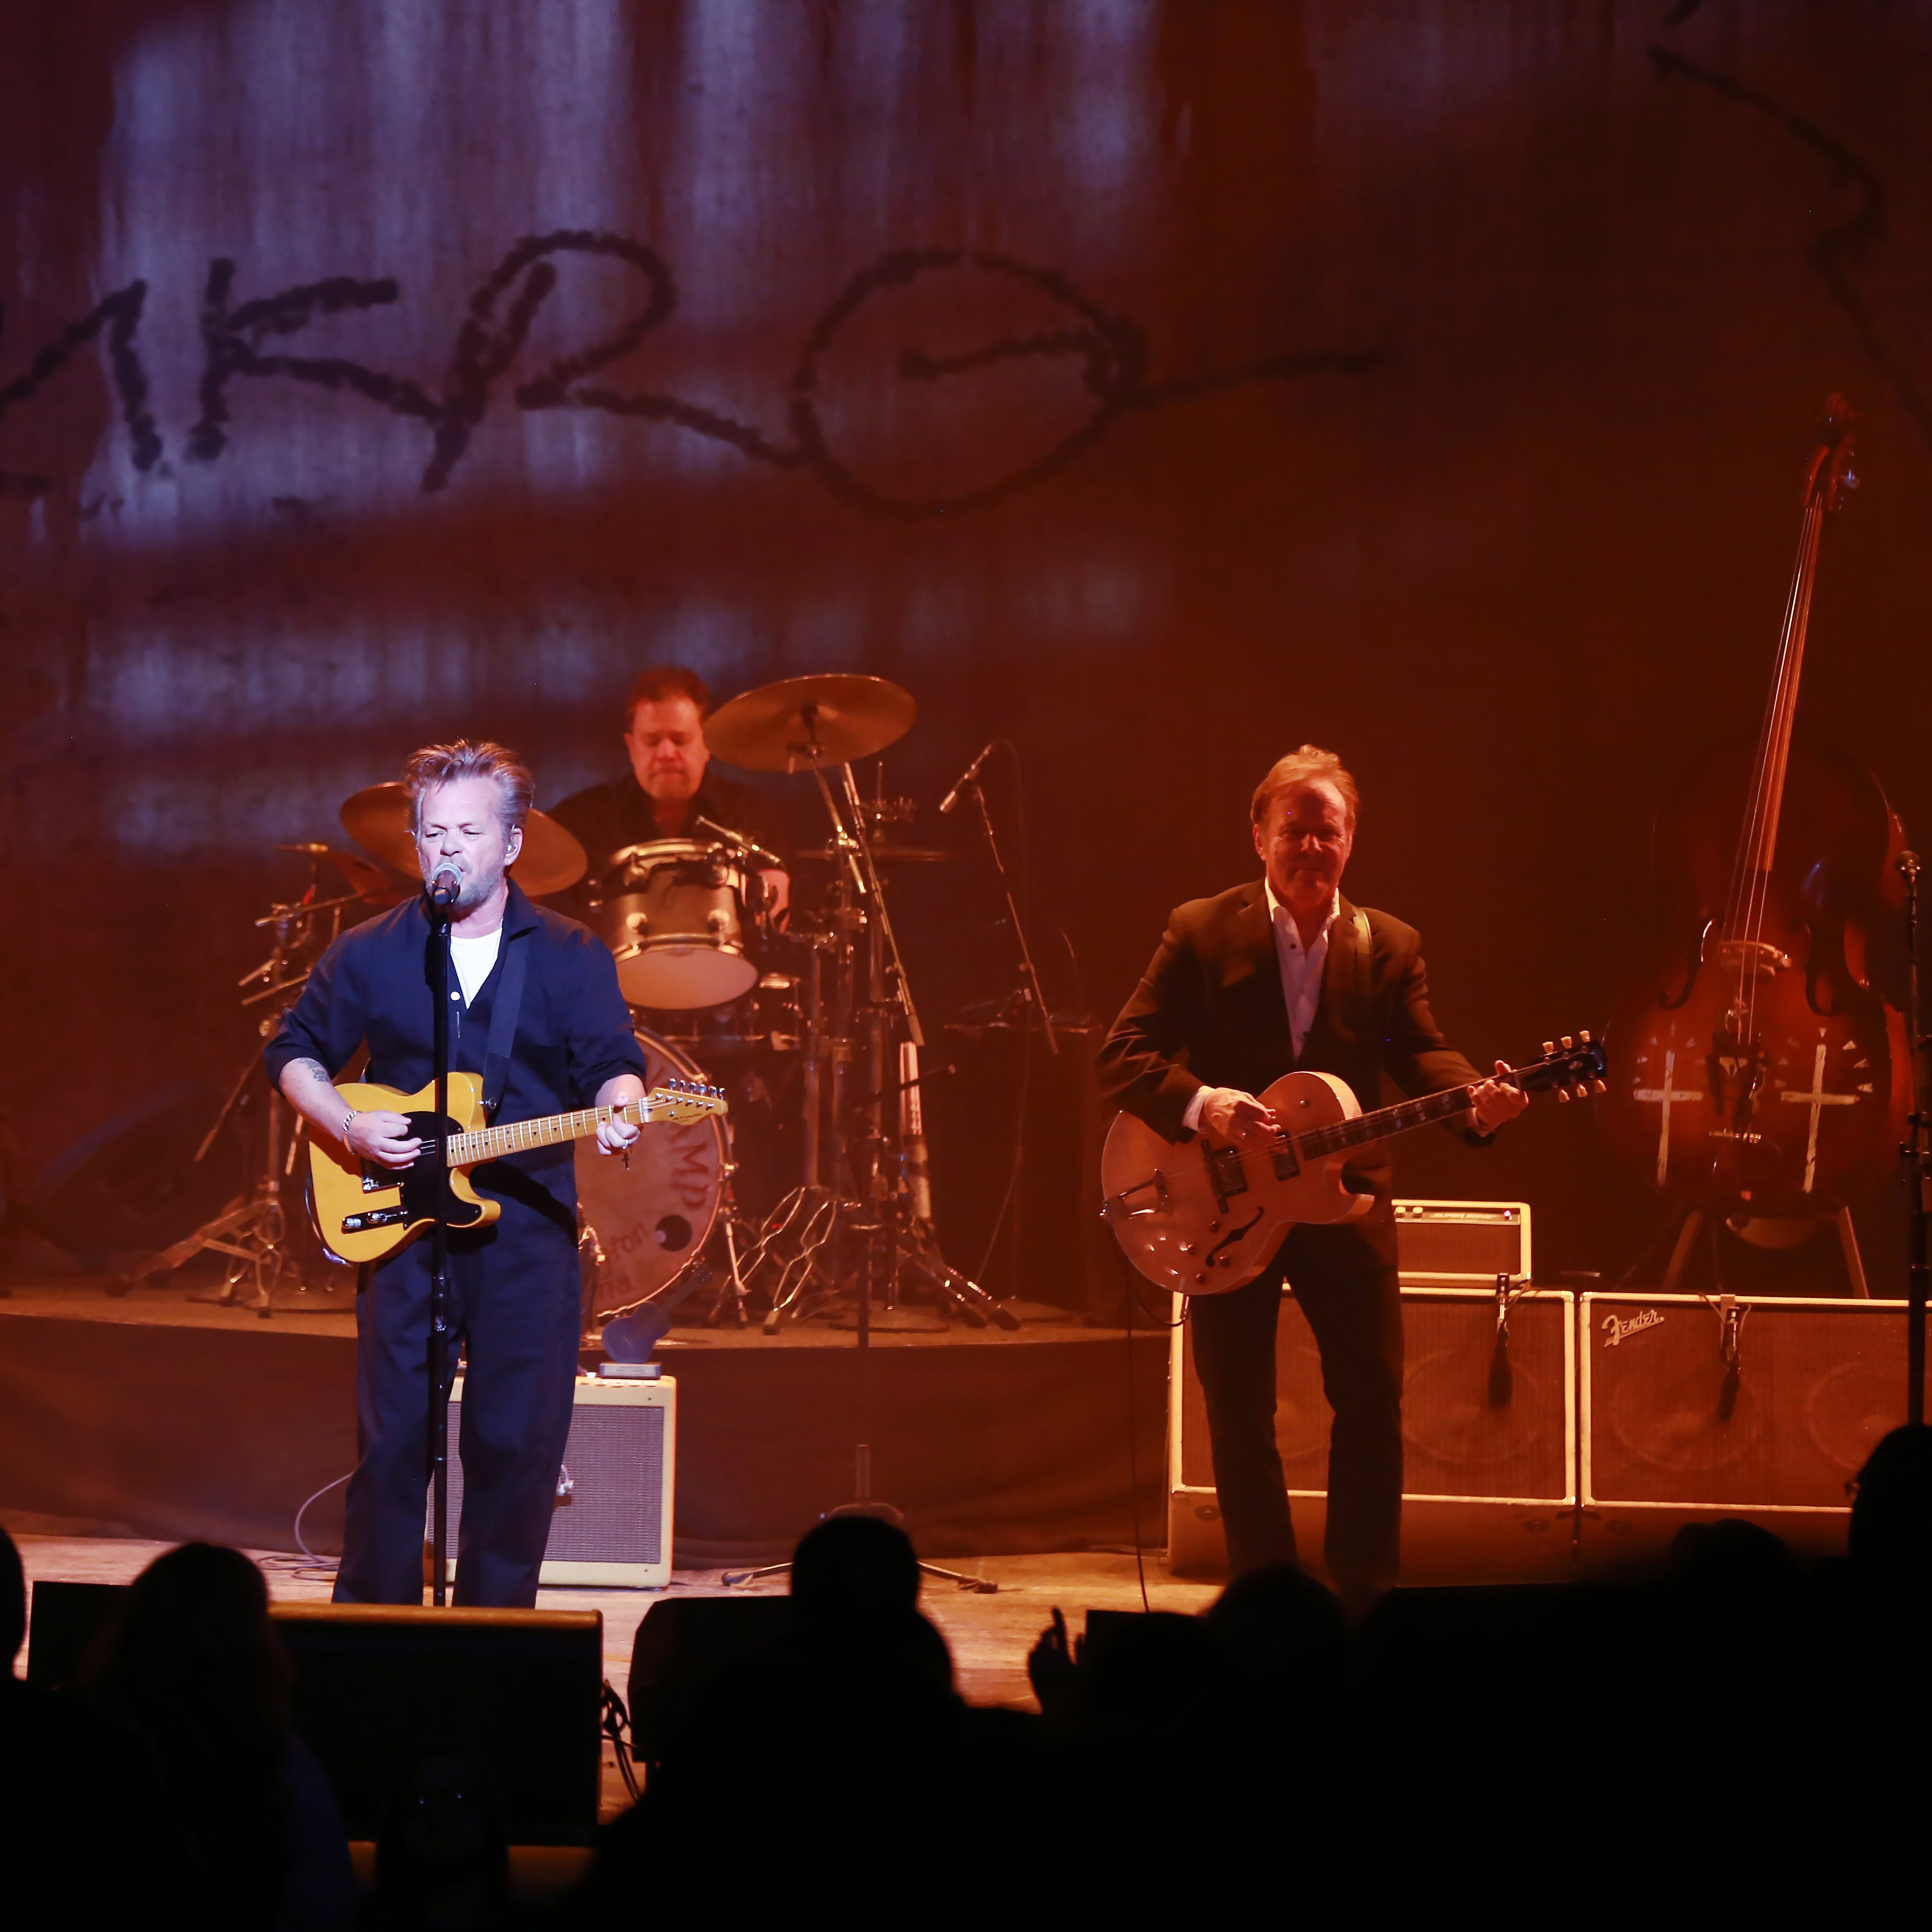 For John Mellencamp, the thrill of living goes on at invigorating Milwaukee concert